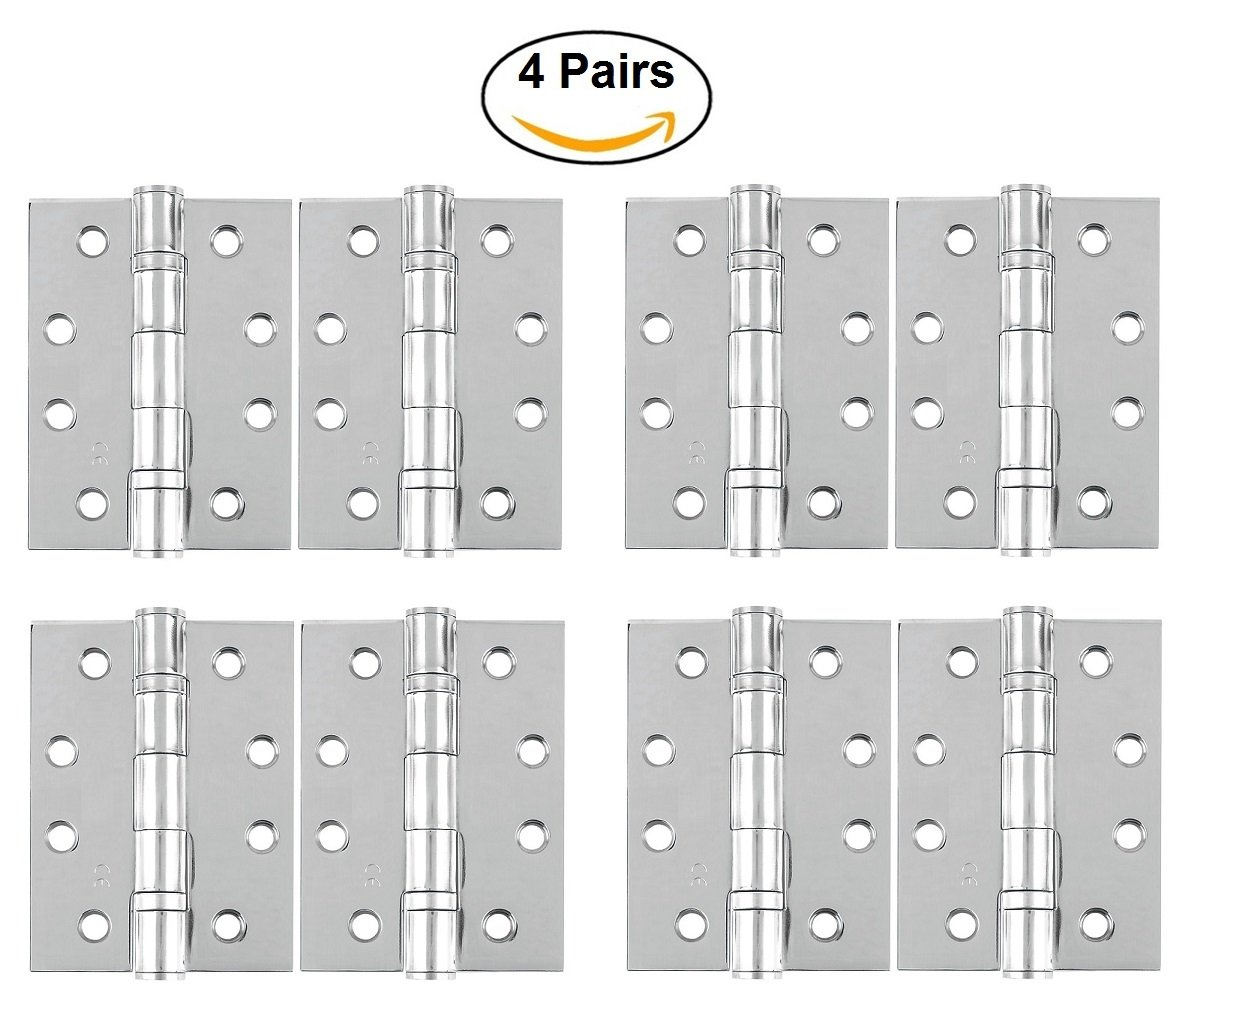 Door Hinge [By XFORT] 4 inch (100mm) Ball Bearing Door Hinges, Fire Door Hinge Grade 11 Fire Rated to BS EN 1935 Standards, Ideal for Internal & External Doors (2 Pairs Polished Chrome) Maher London Ltd